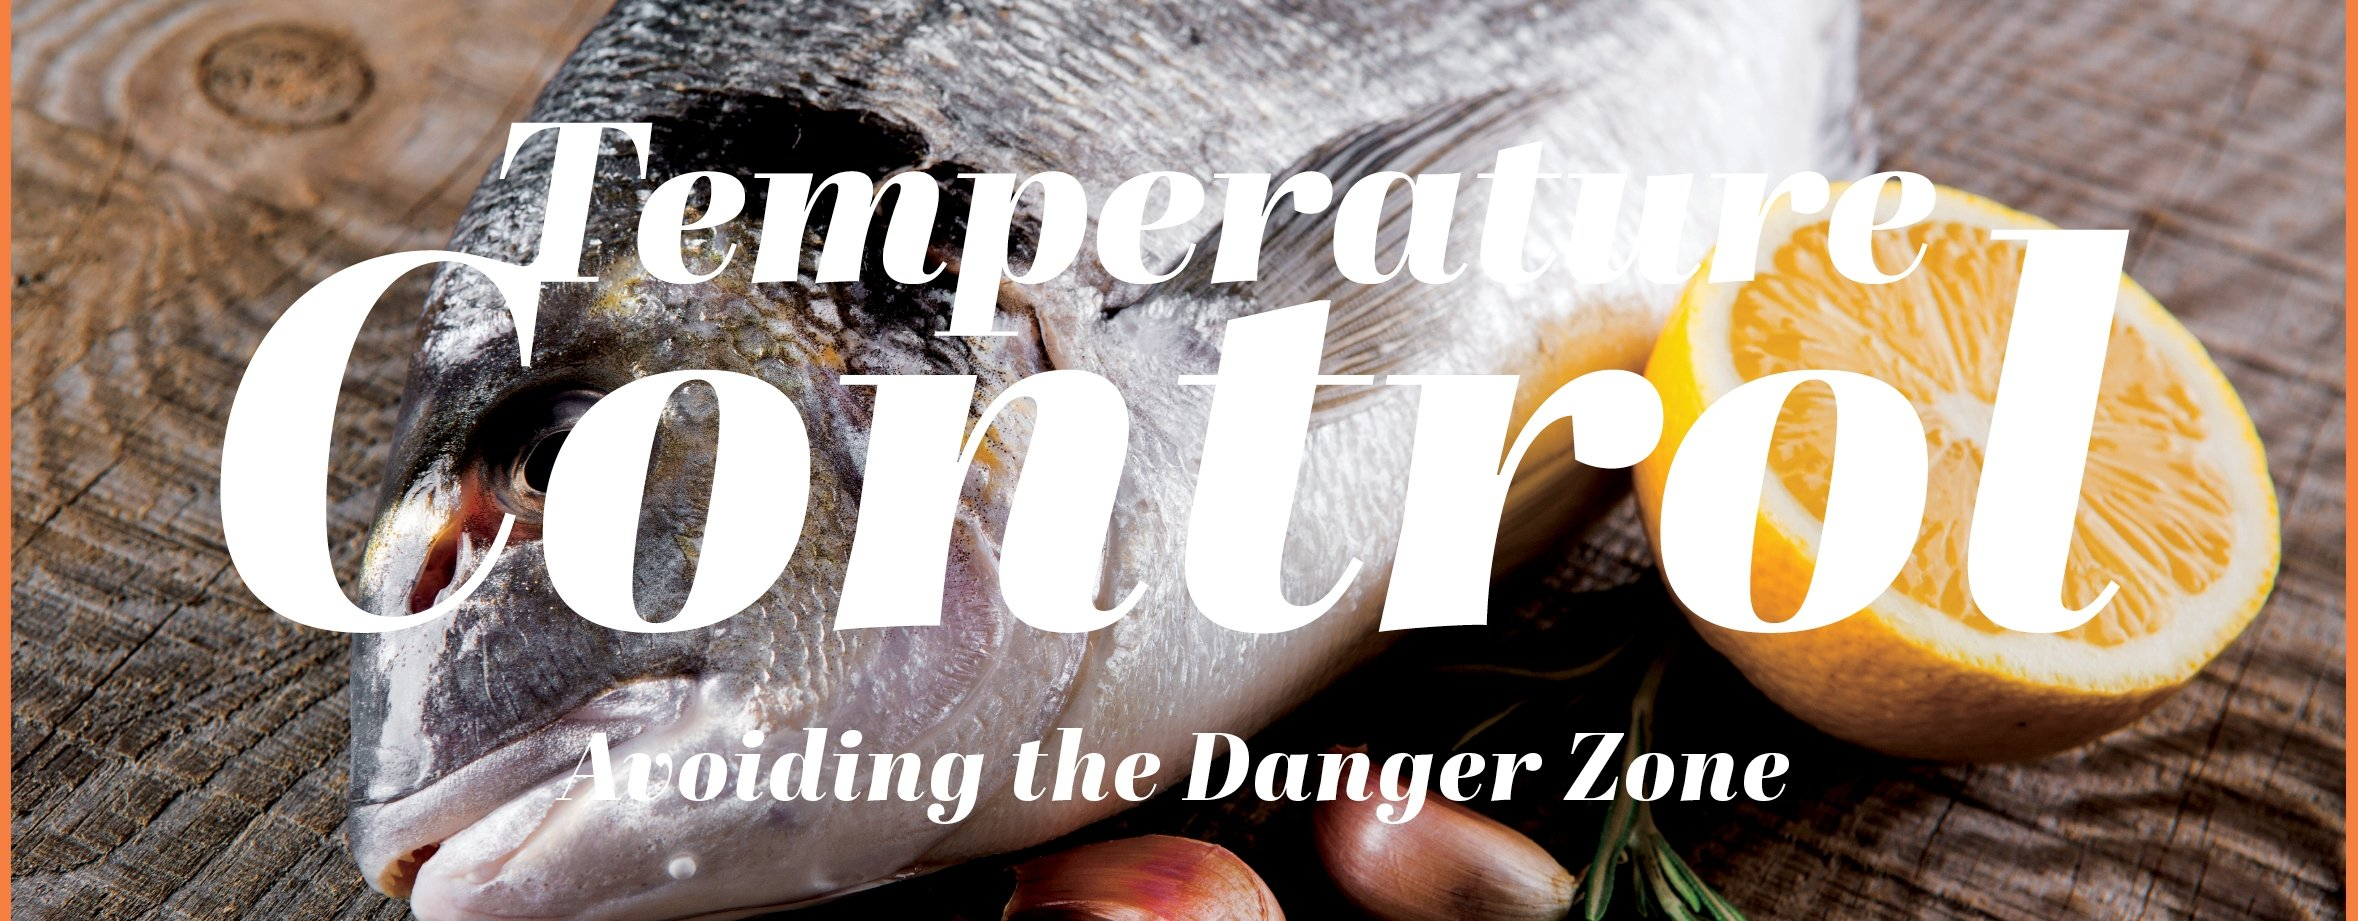 With the right knowledge and temperature control equipment, you can keep food safe and delicious.